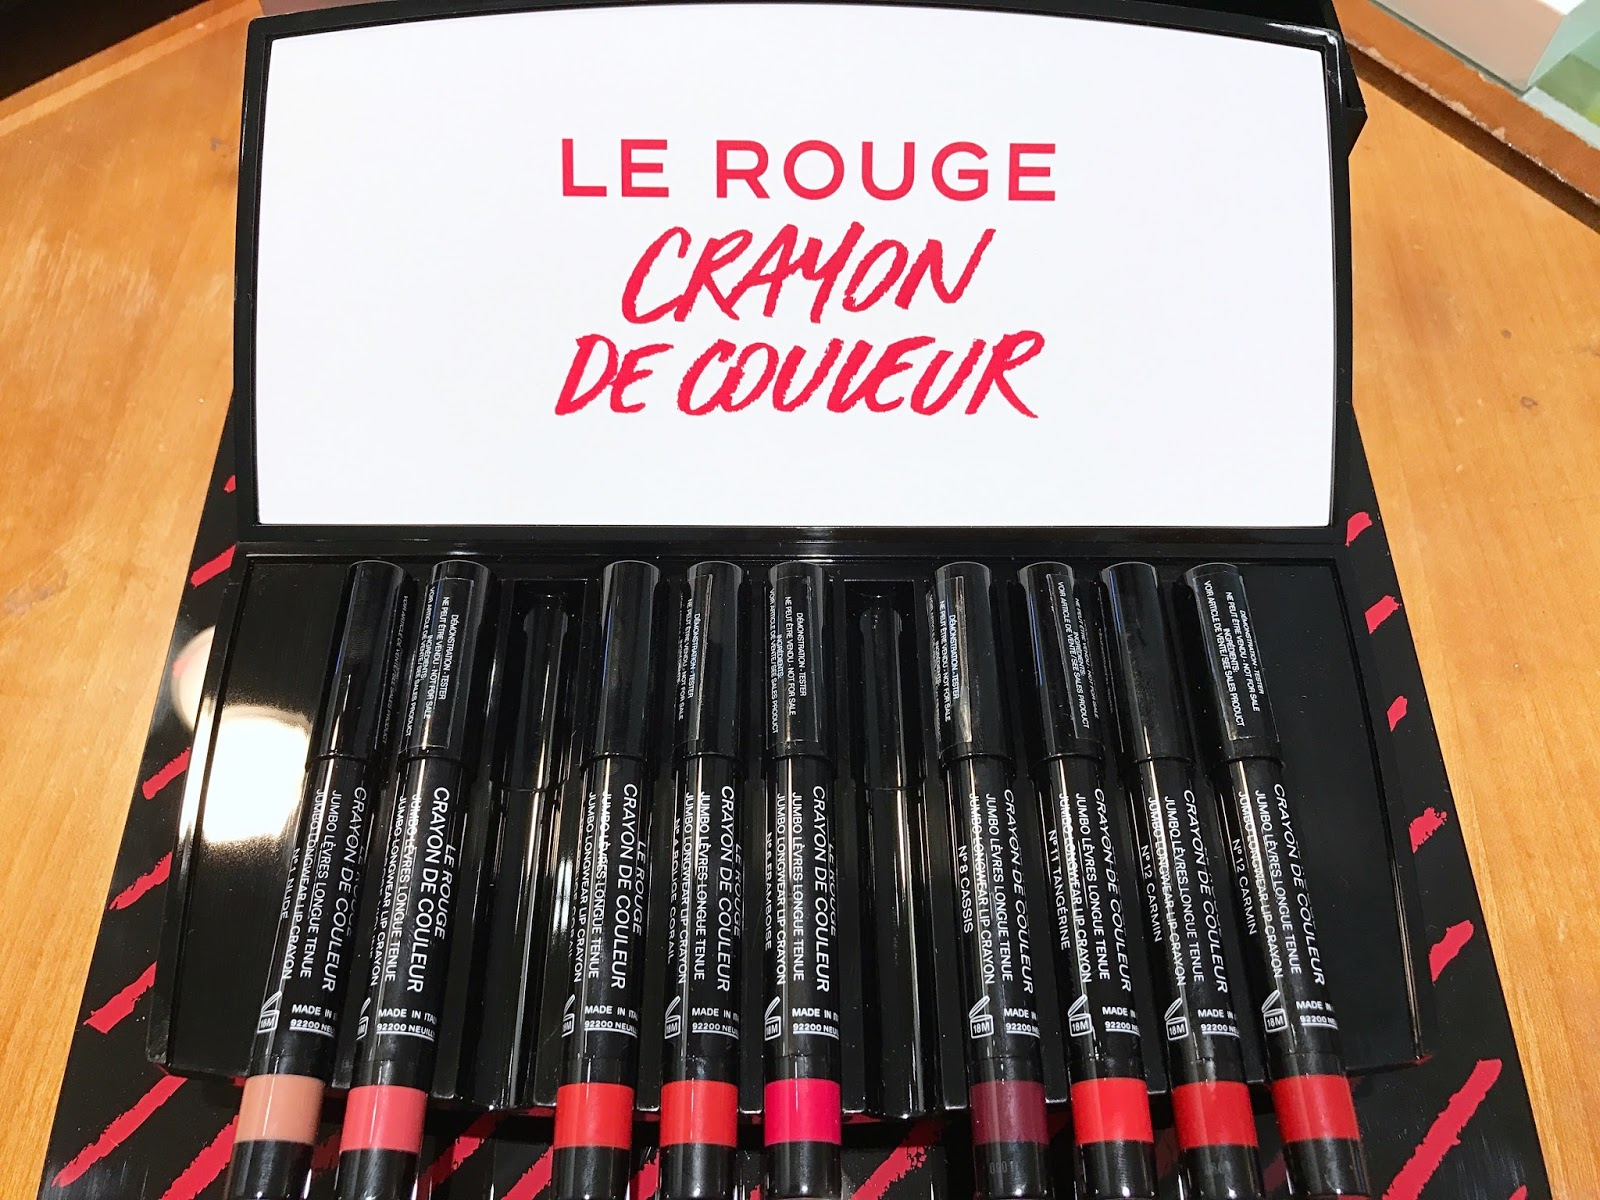 chanel le rouge crayon de couleur coco code harmonie de blush spring 2017 by georgia grace. Black Bedroom Furniture Sets. Home Design Ideas